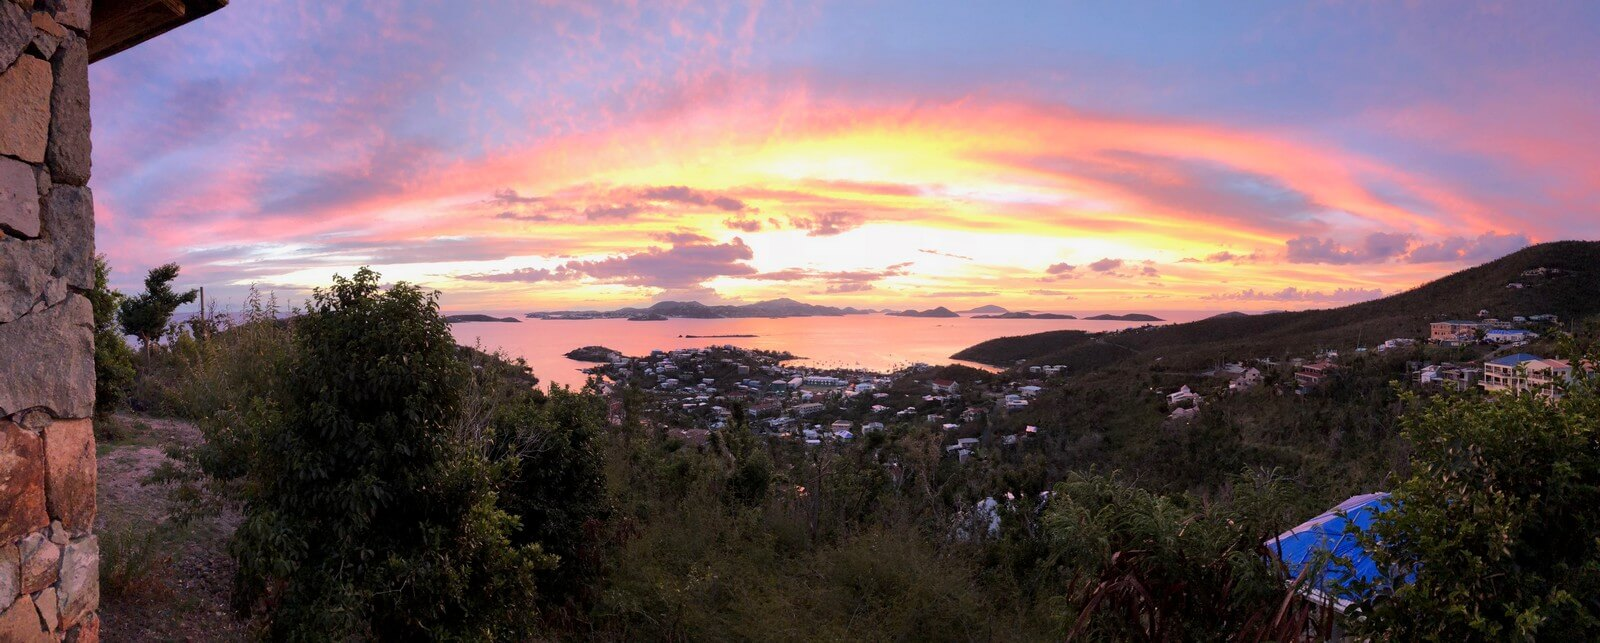 Sunset over St John